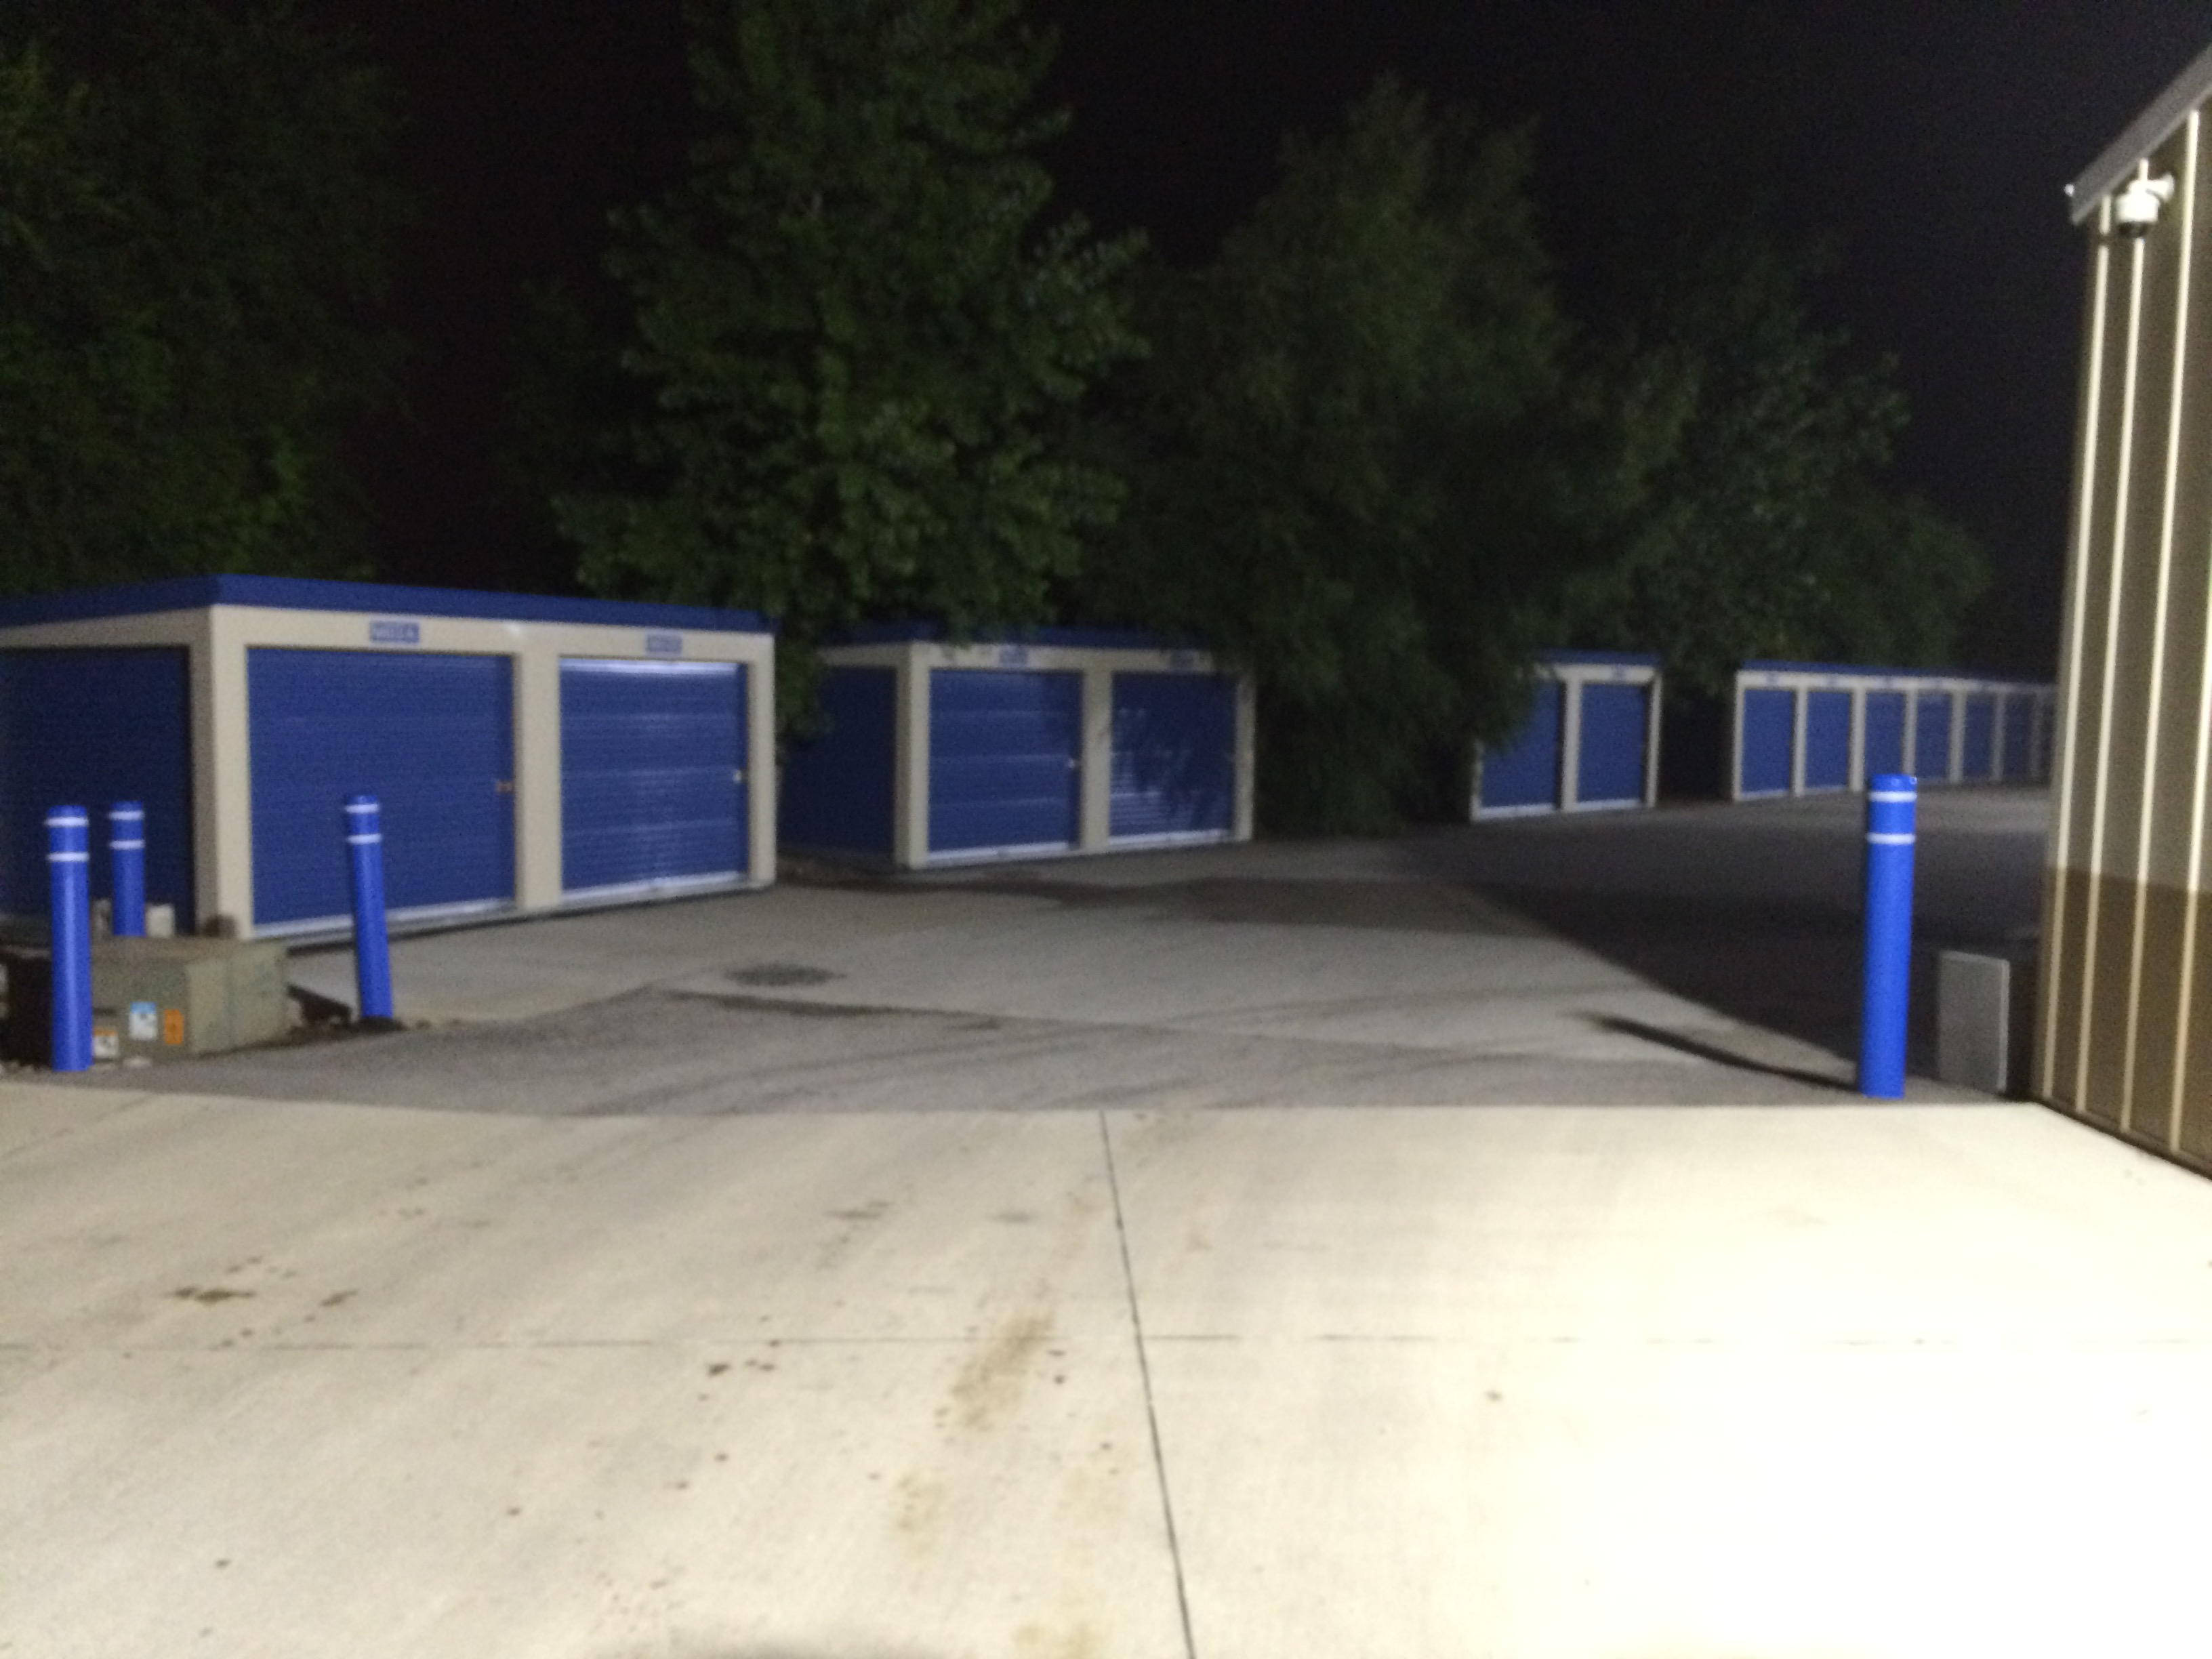 Perimeter Led Flood Lighting At 24 Hour Storage In Davenport Iowa